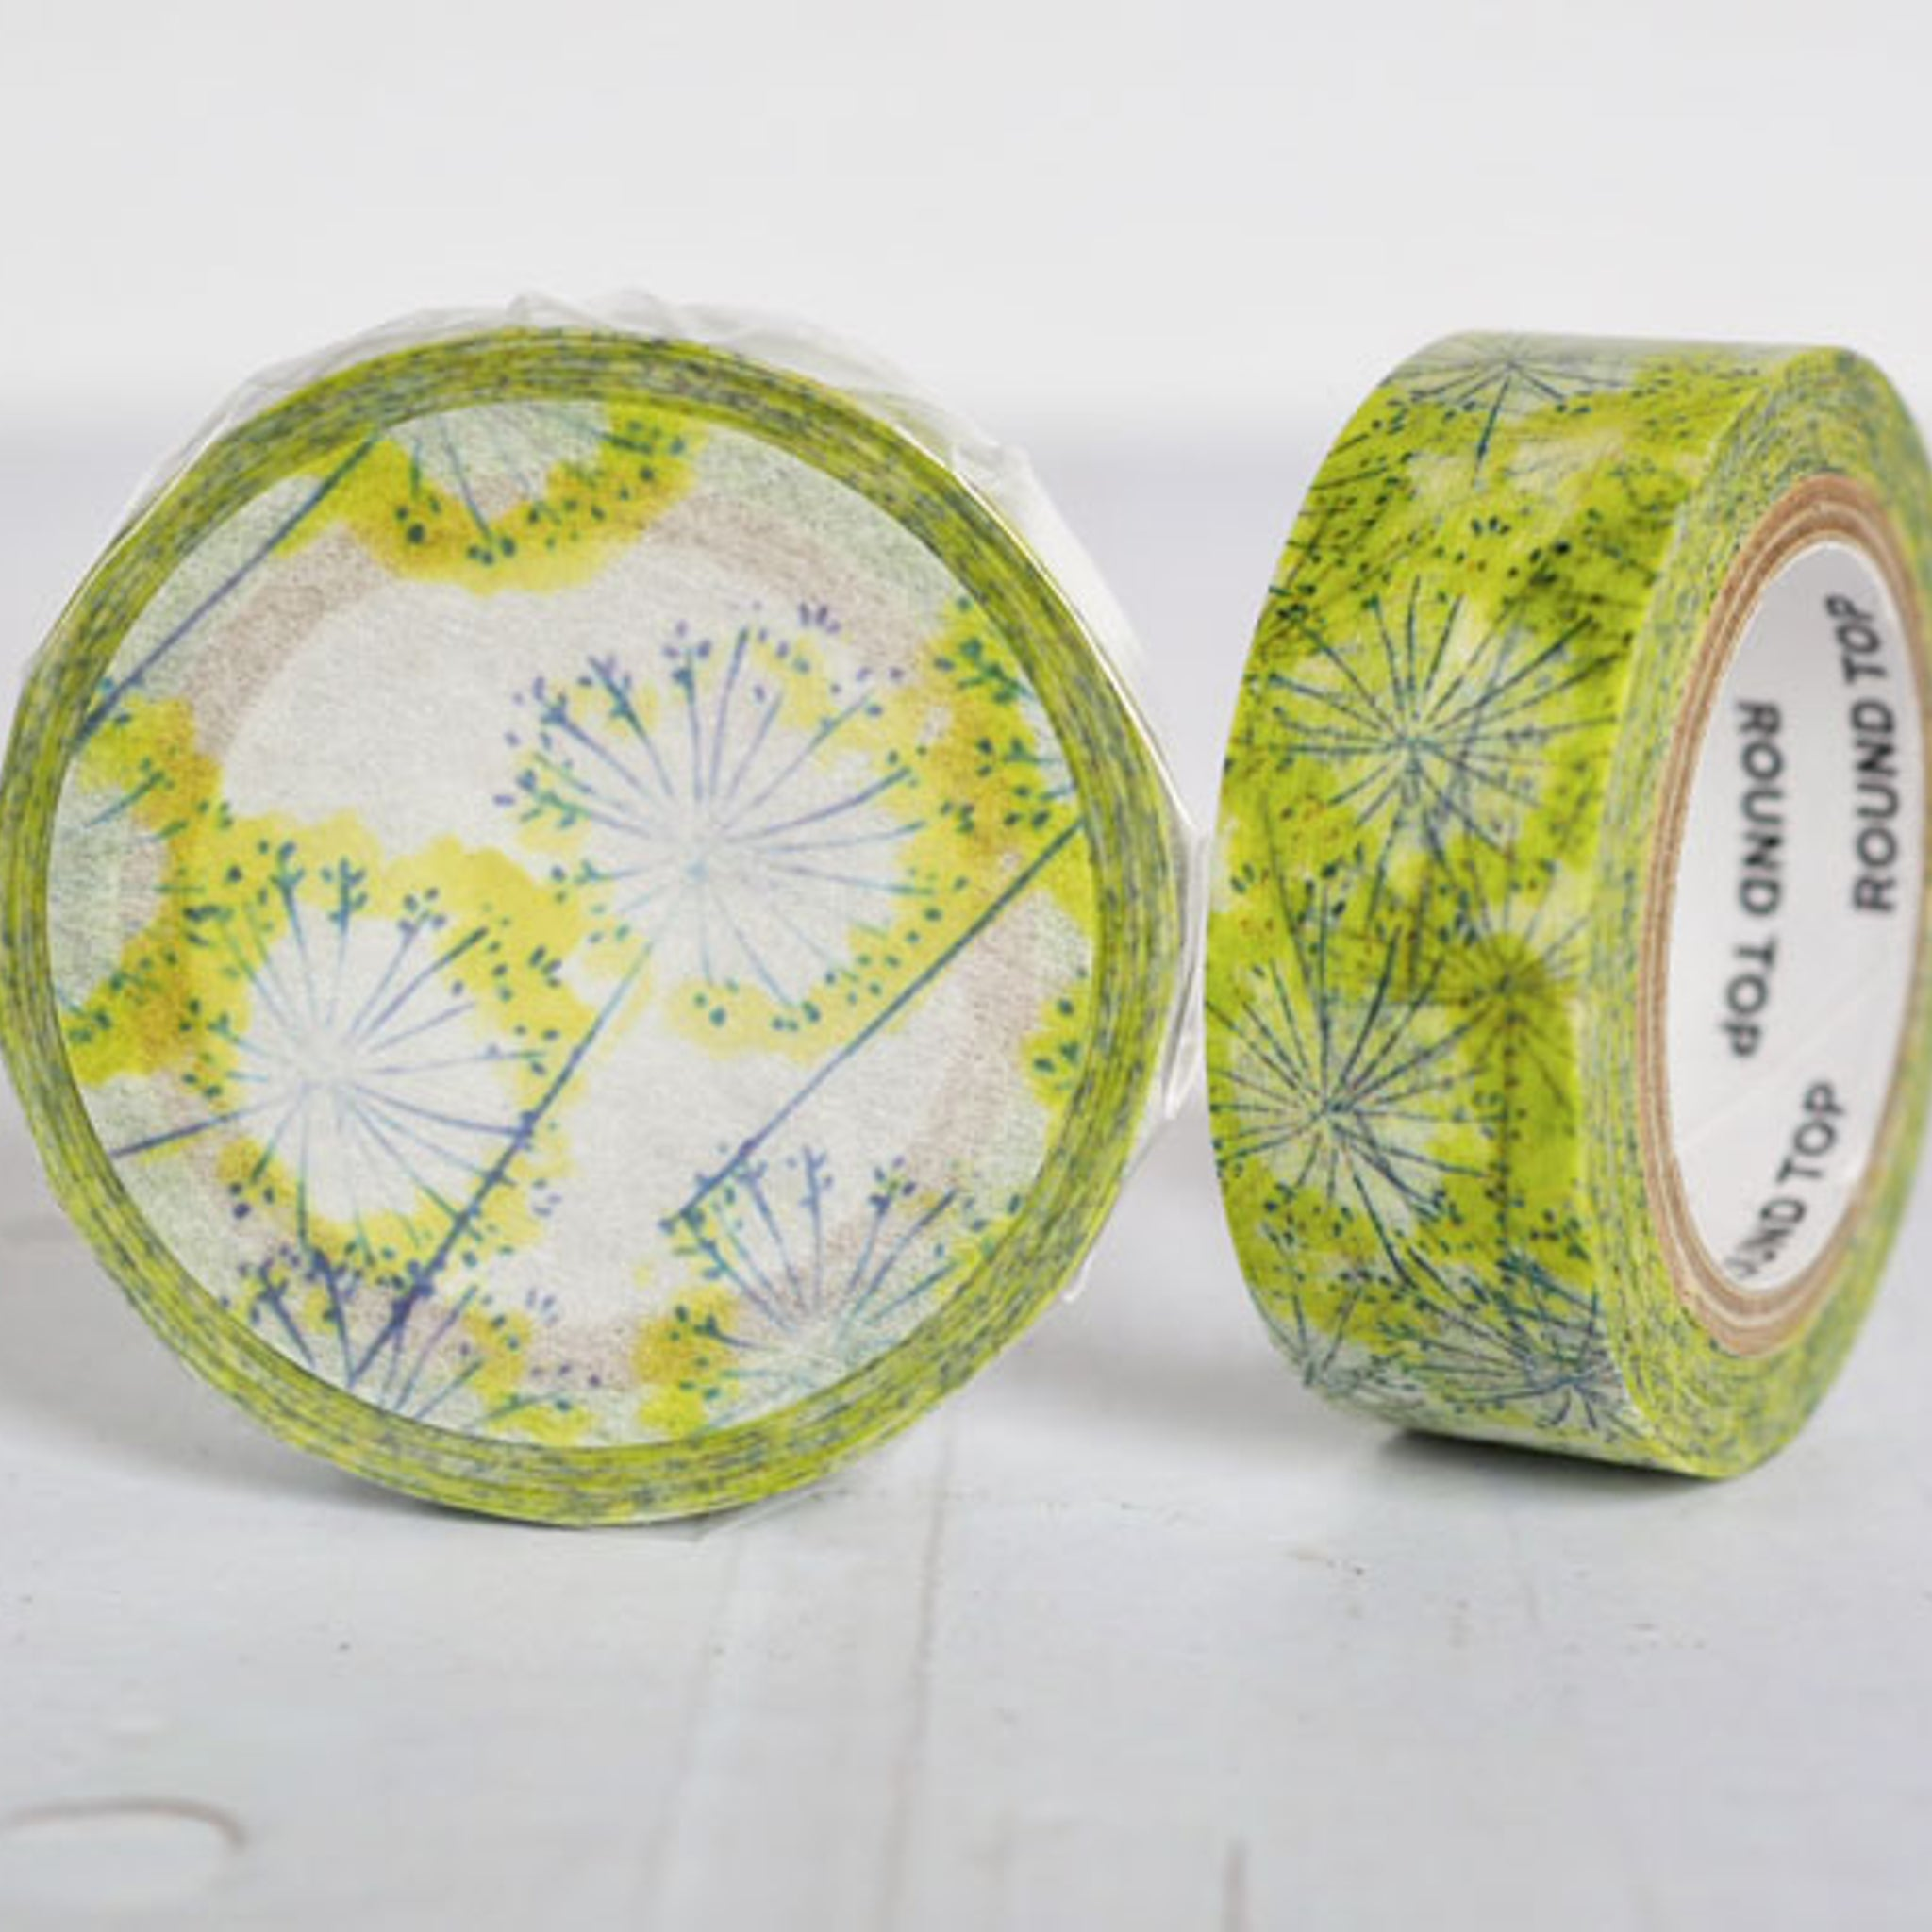 Round Top x ChamilGarden Fennel Washi Tape